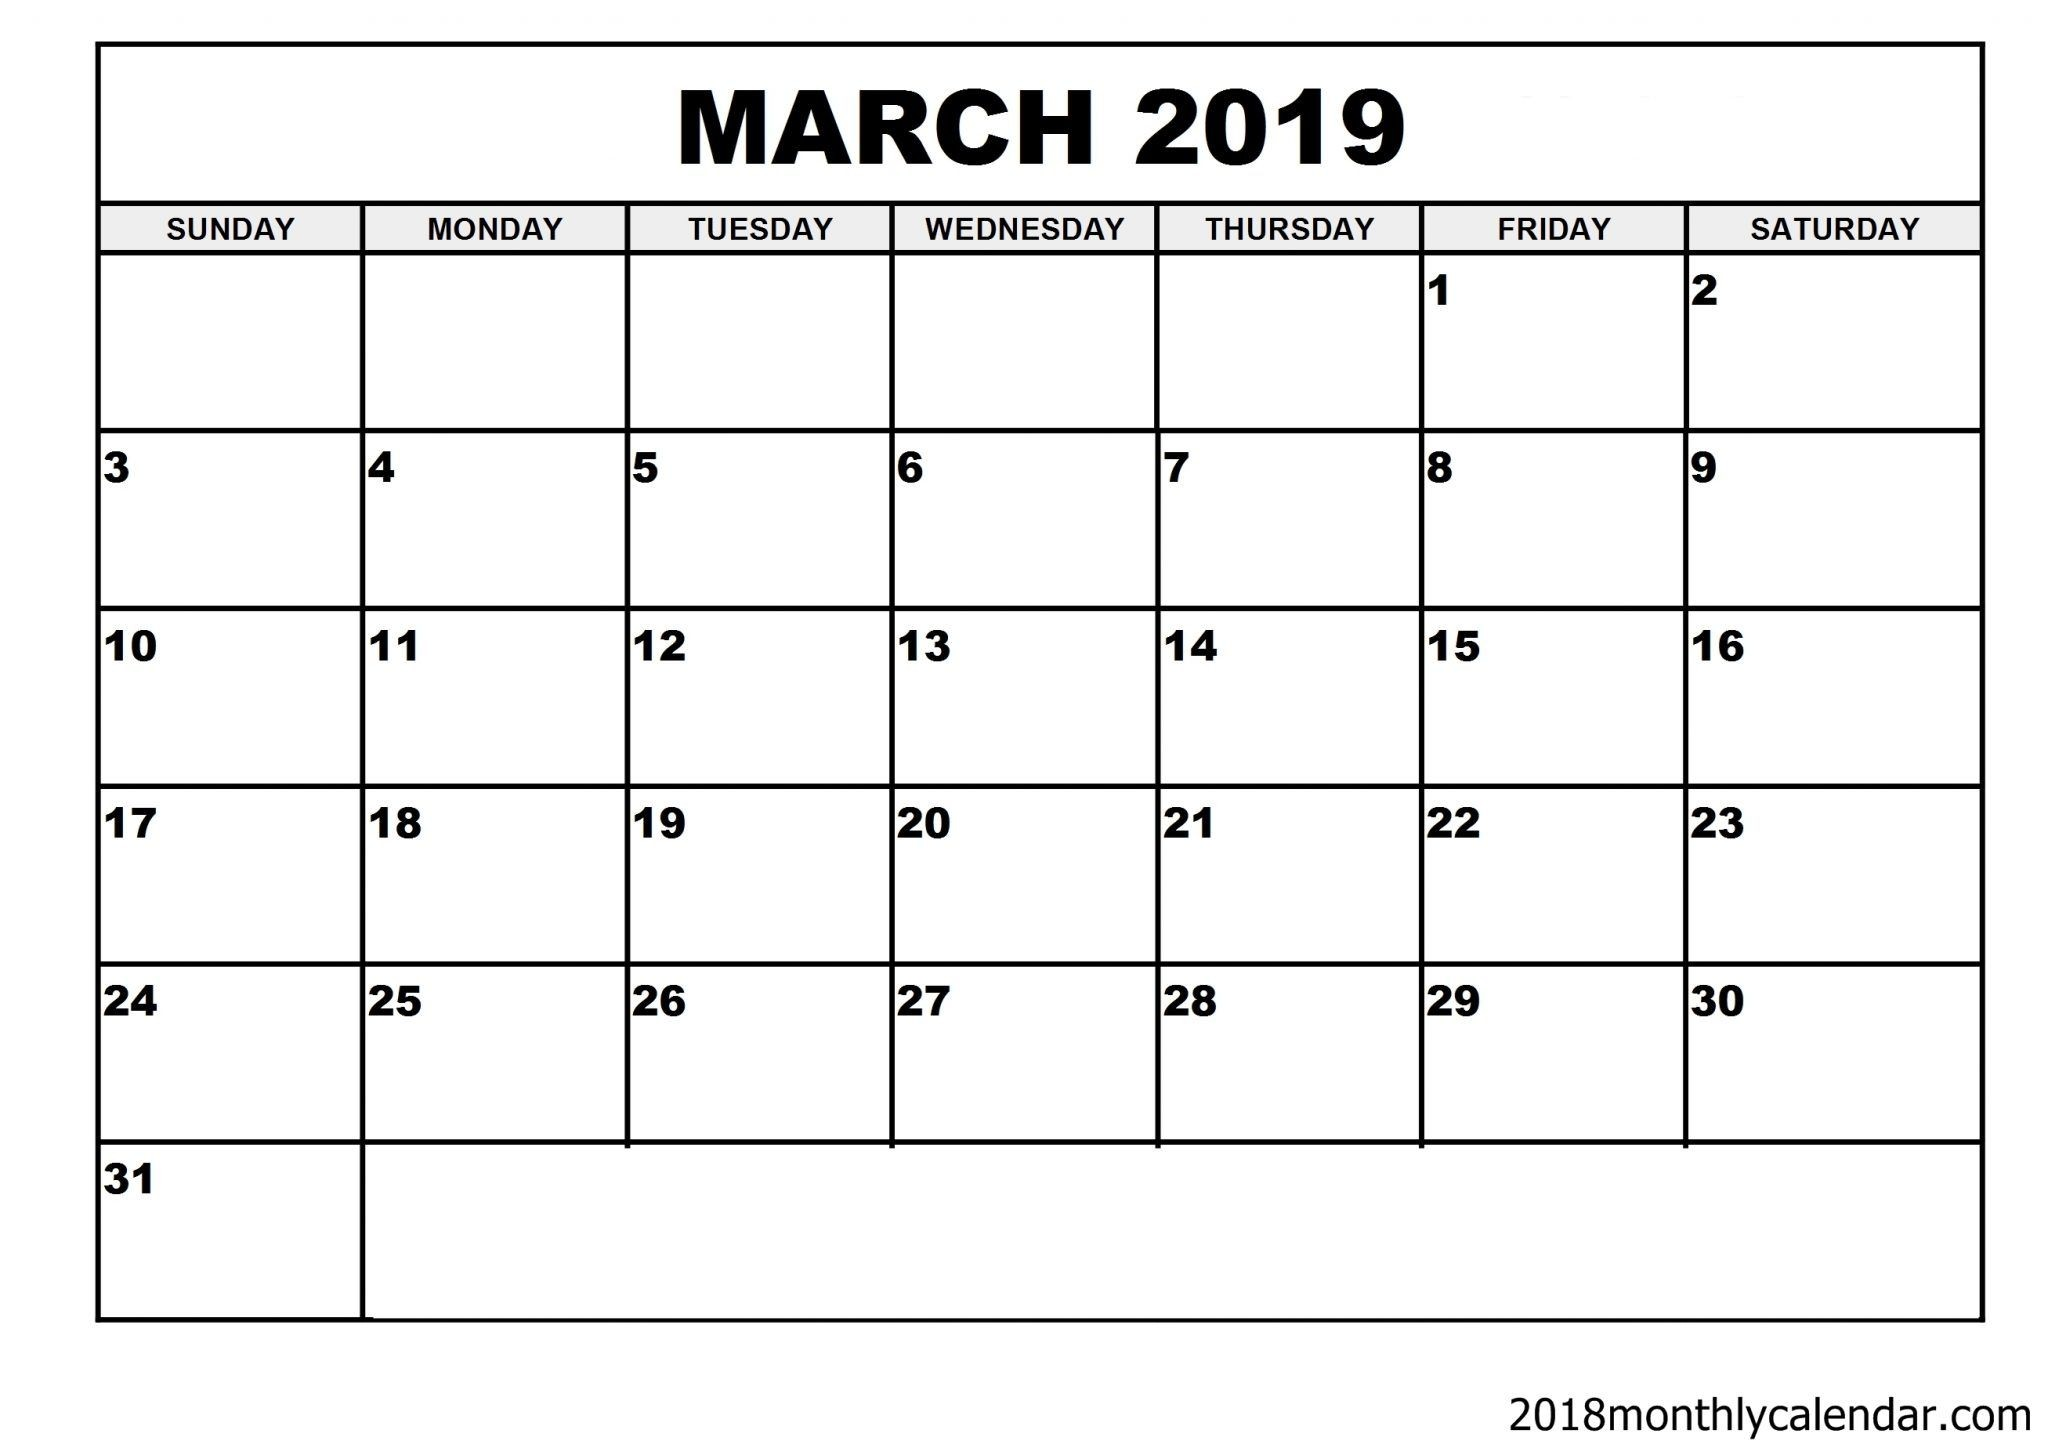 Empty March Calendar Más Caliente 150 Best Free March 2019 Calendar Printable Templates Images In 2019 Of Empty March Calendar Más Actual the Ideal Instance E S Blank Calendar Templates July 2018